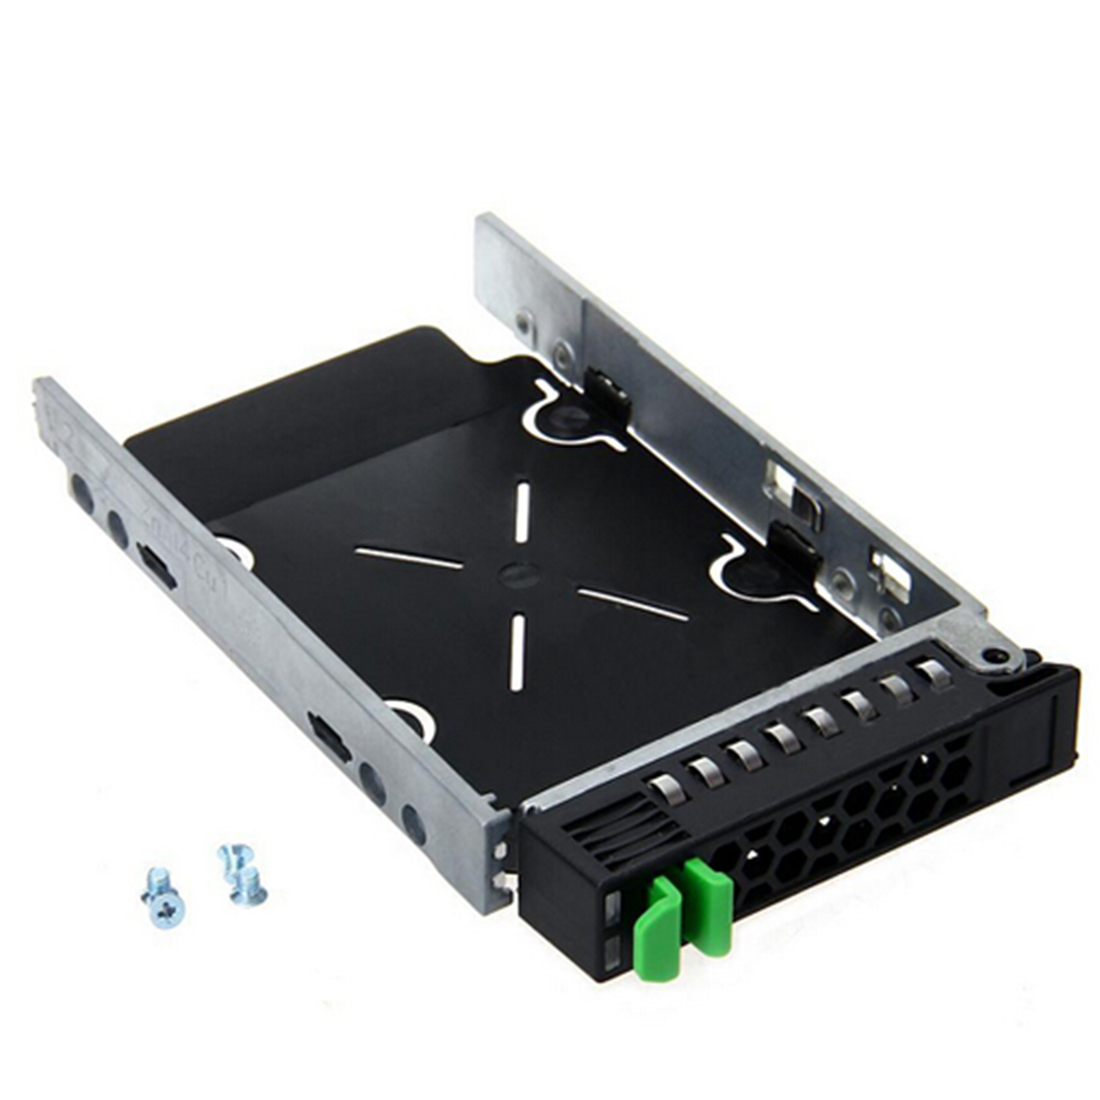 "[The goods stop production and no stock]2.5 hard drive, 2.5"" SAS SCSI HDD Hard Drive Tray Bracket Caddy A3C40101974"